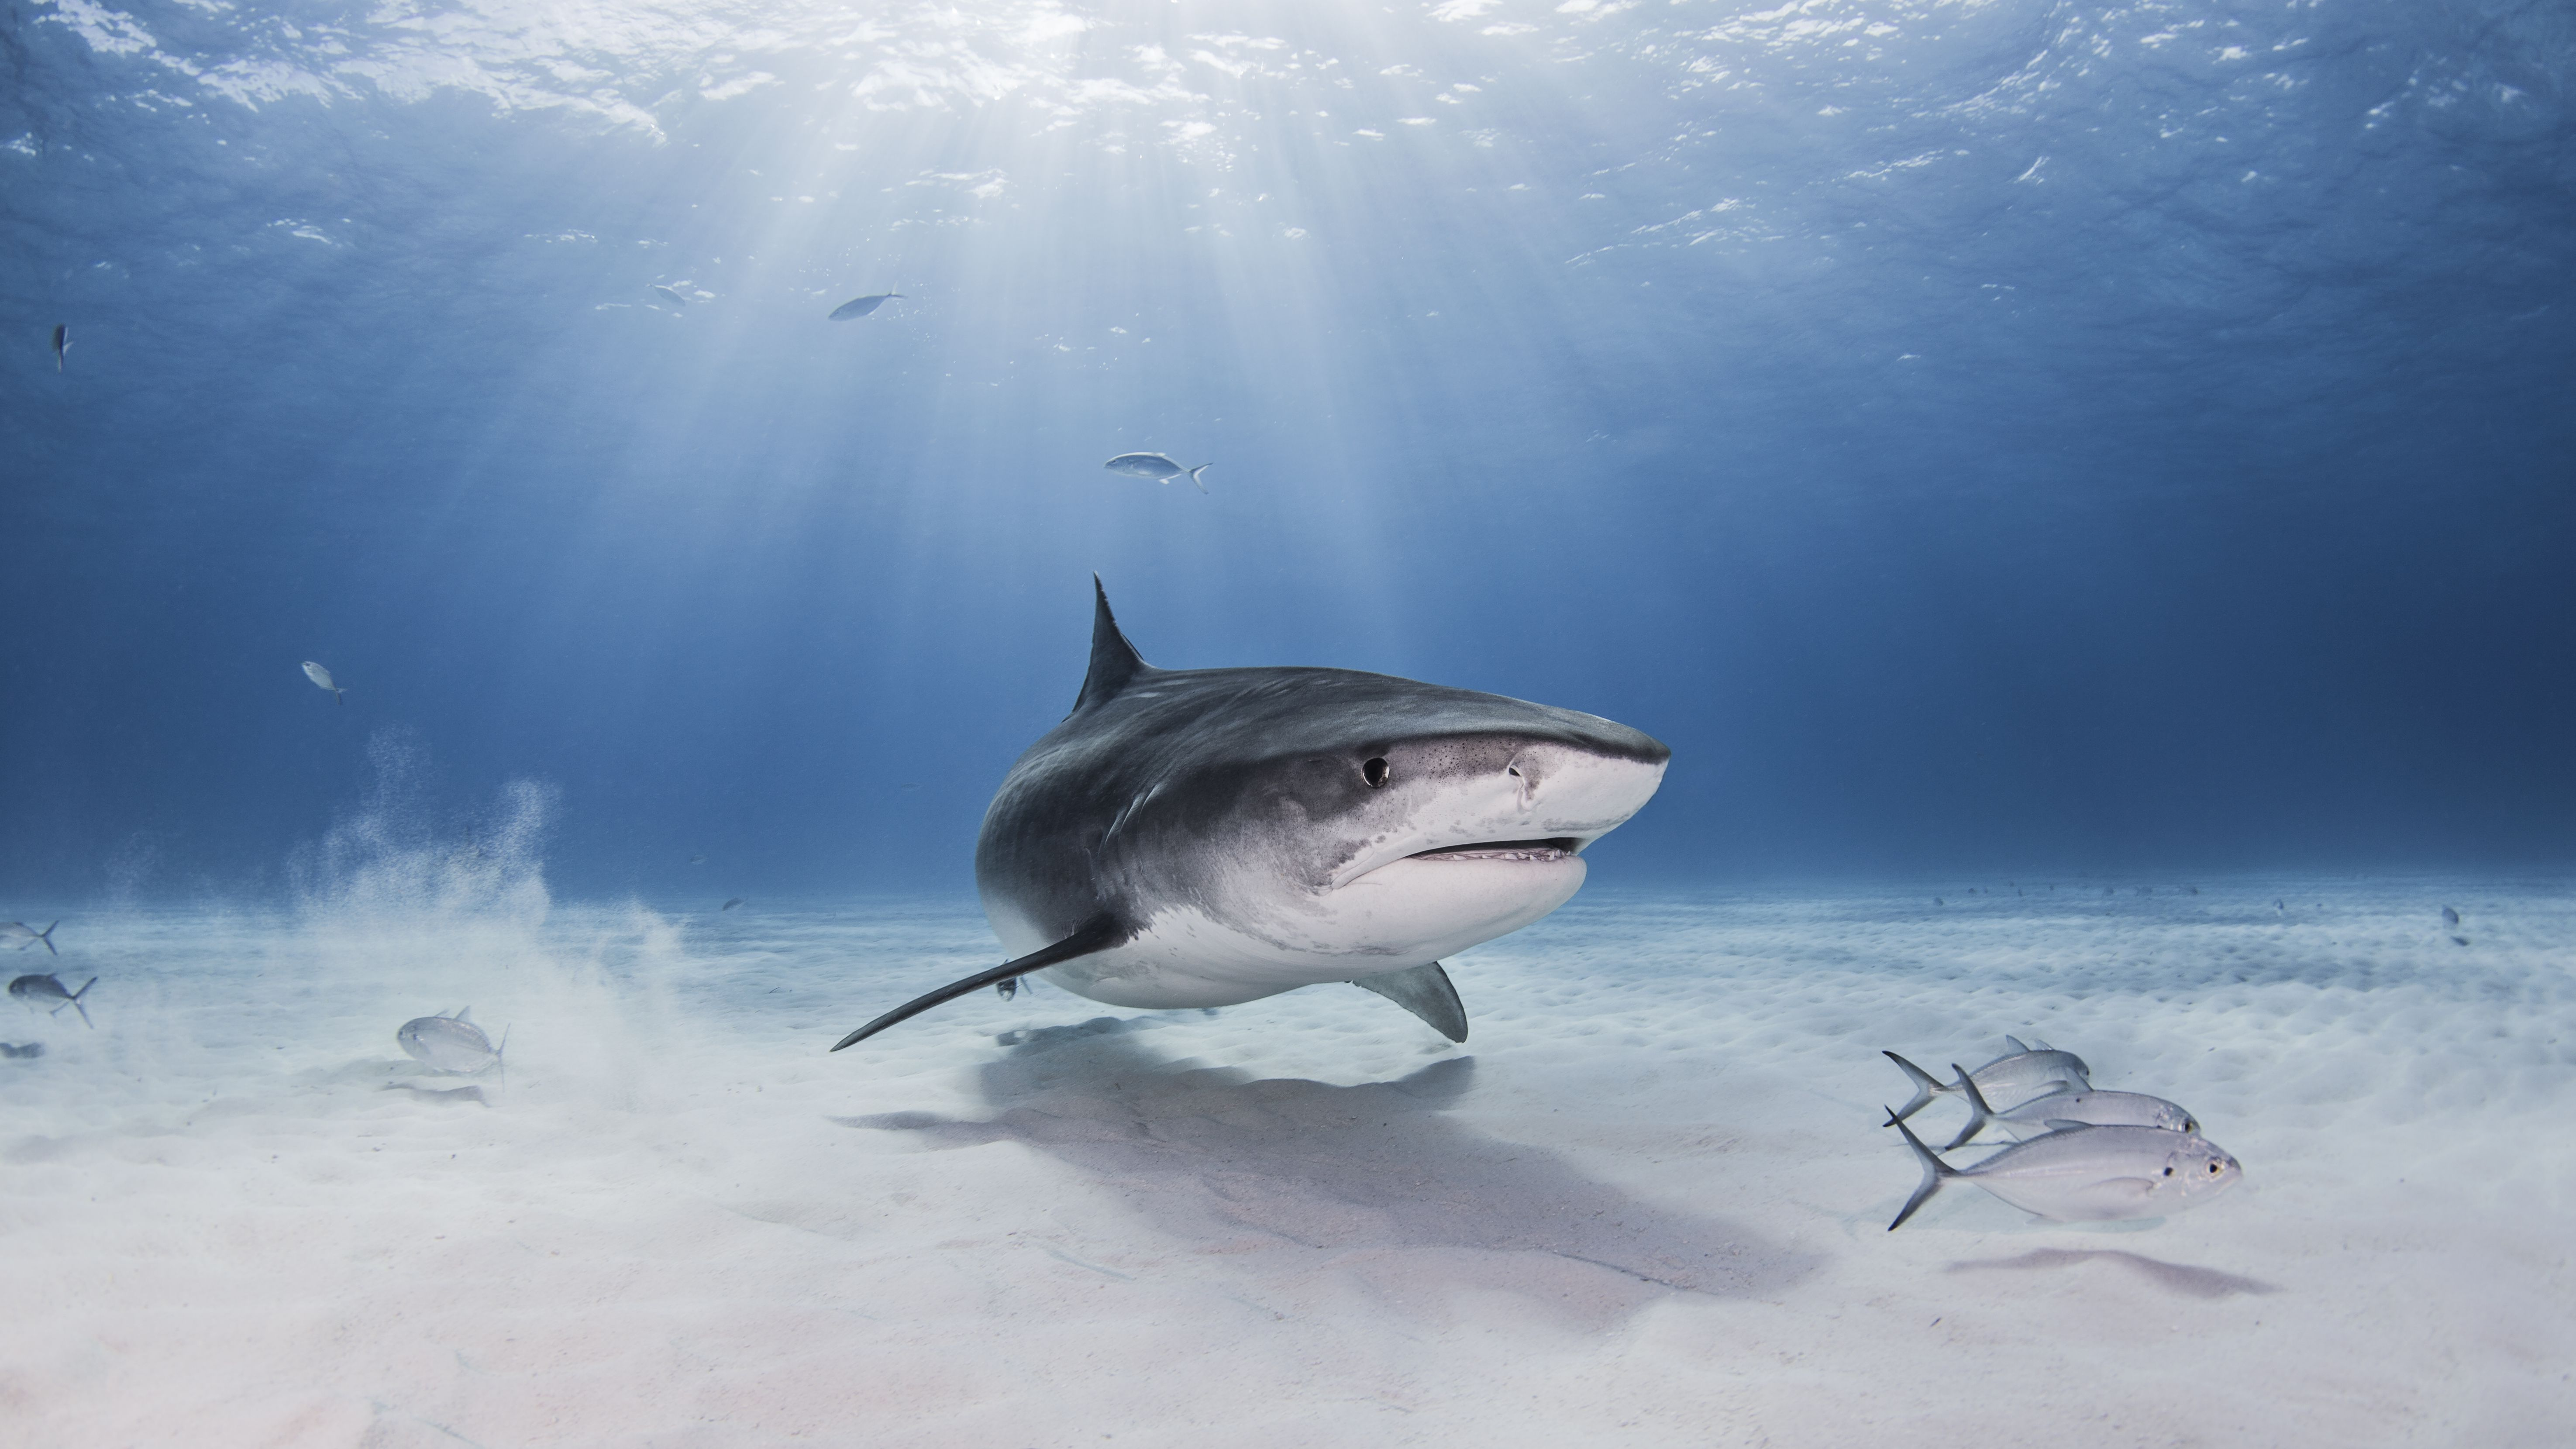 Shark Wordsearch Vocabulary Crossword And More